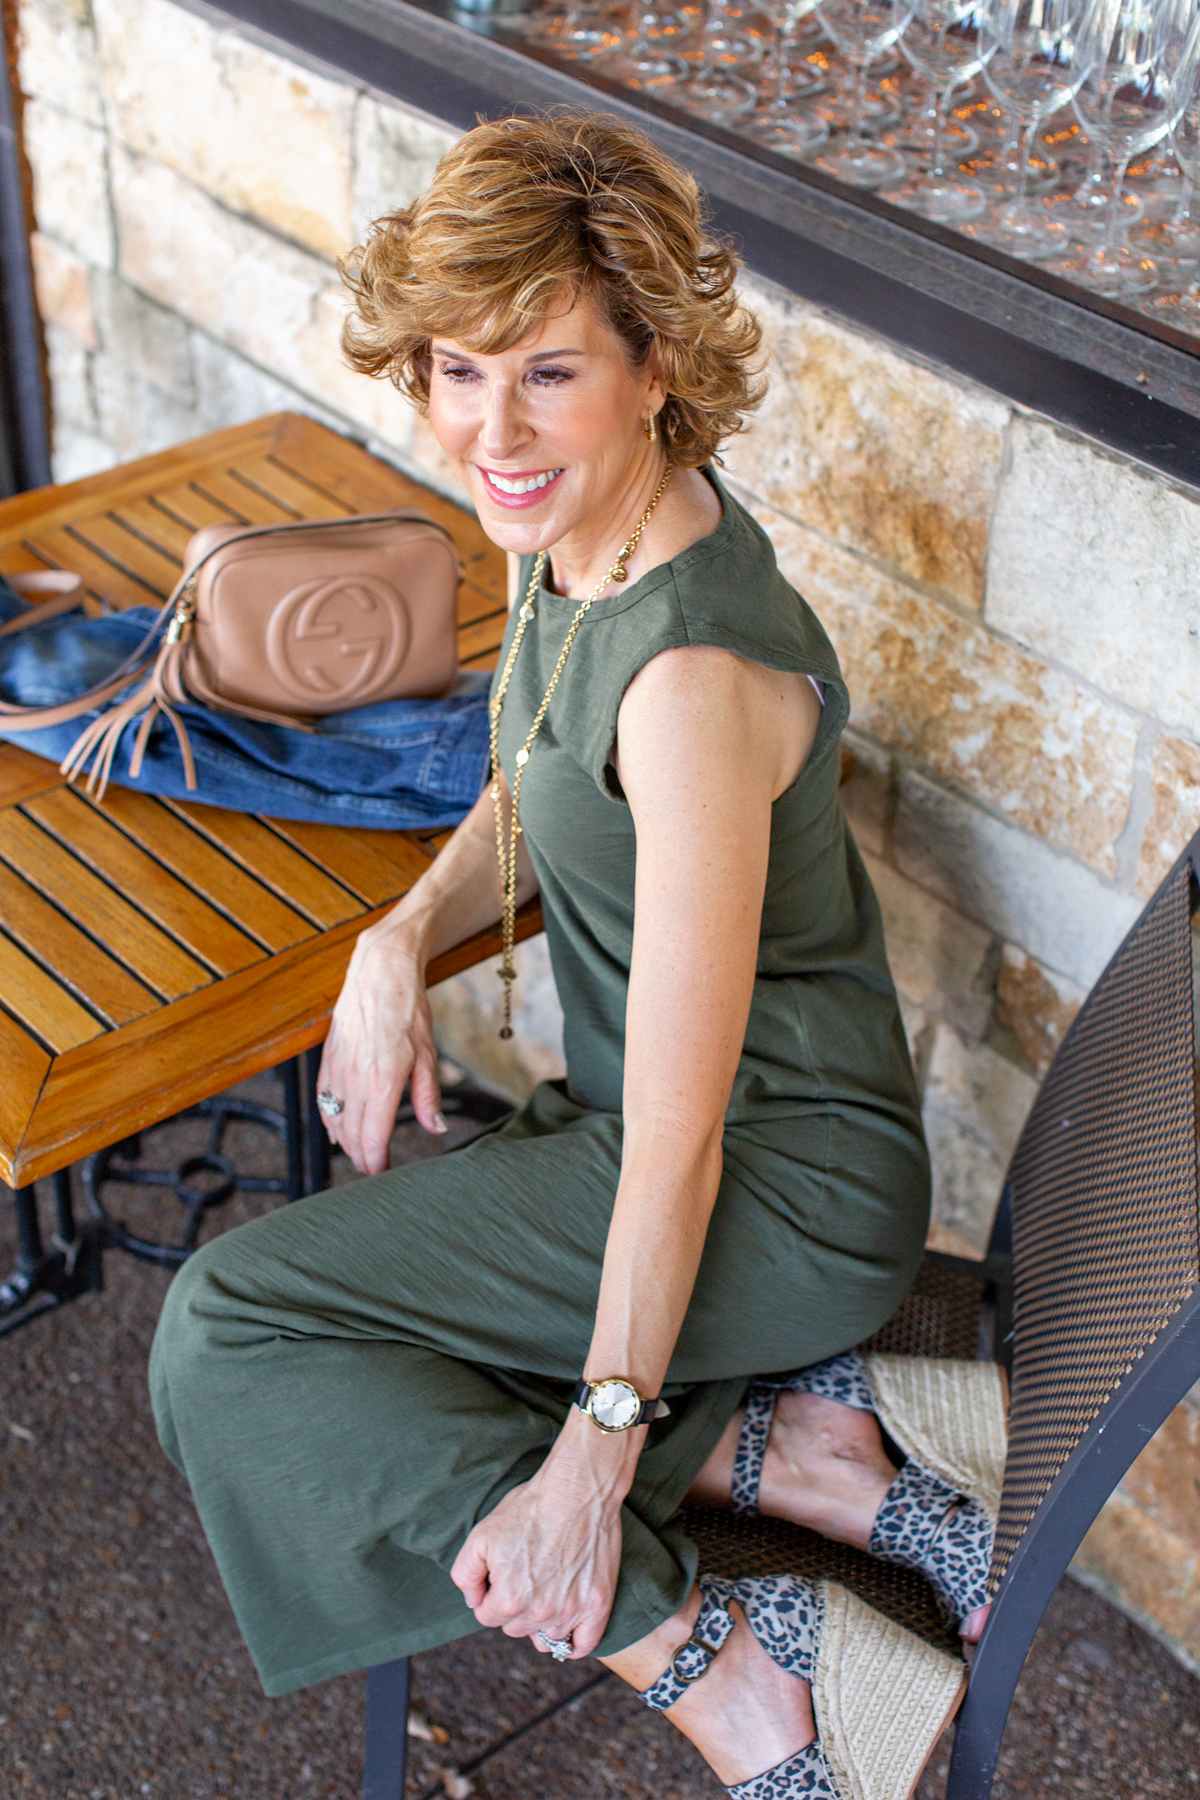 Woman in green dress sitting in a chair and looking off to one side